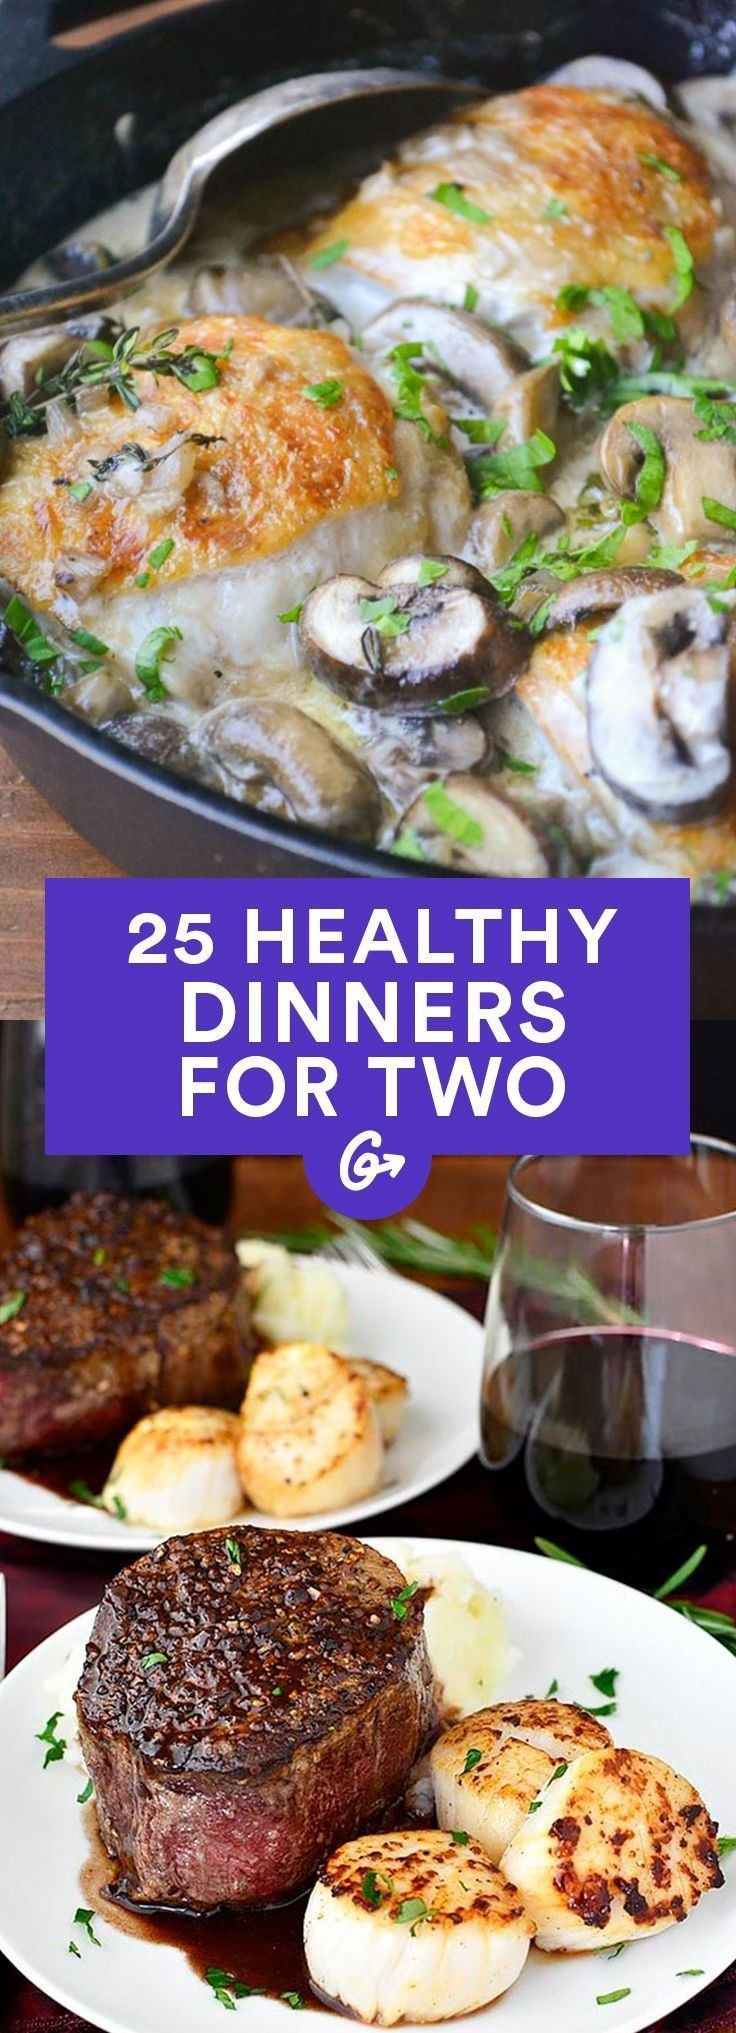 Light Dinner Ideas For Two  Light Dinner Ideas For TwoWritings and Papers